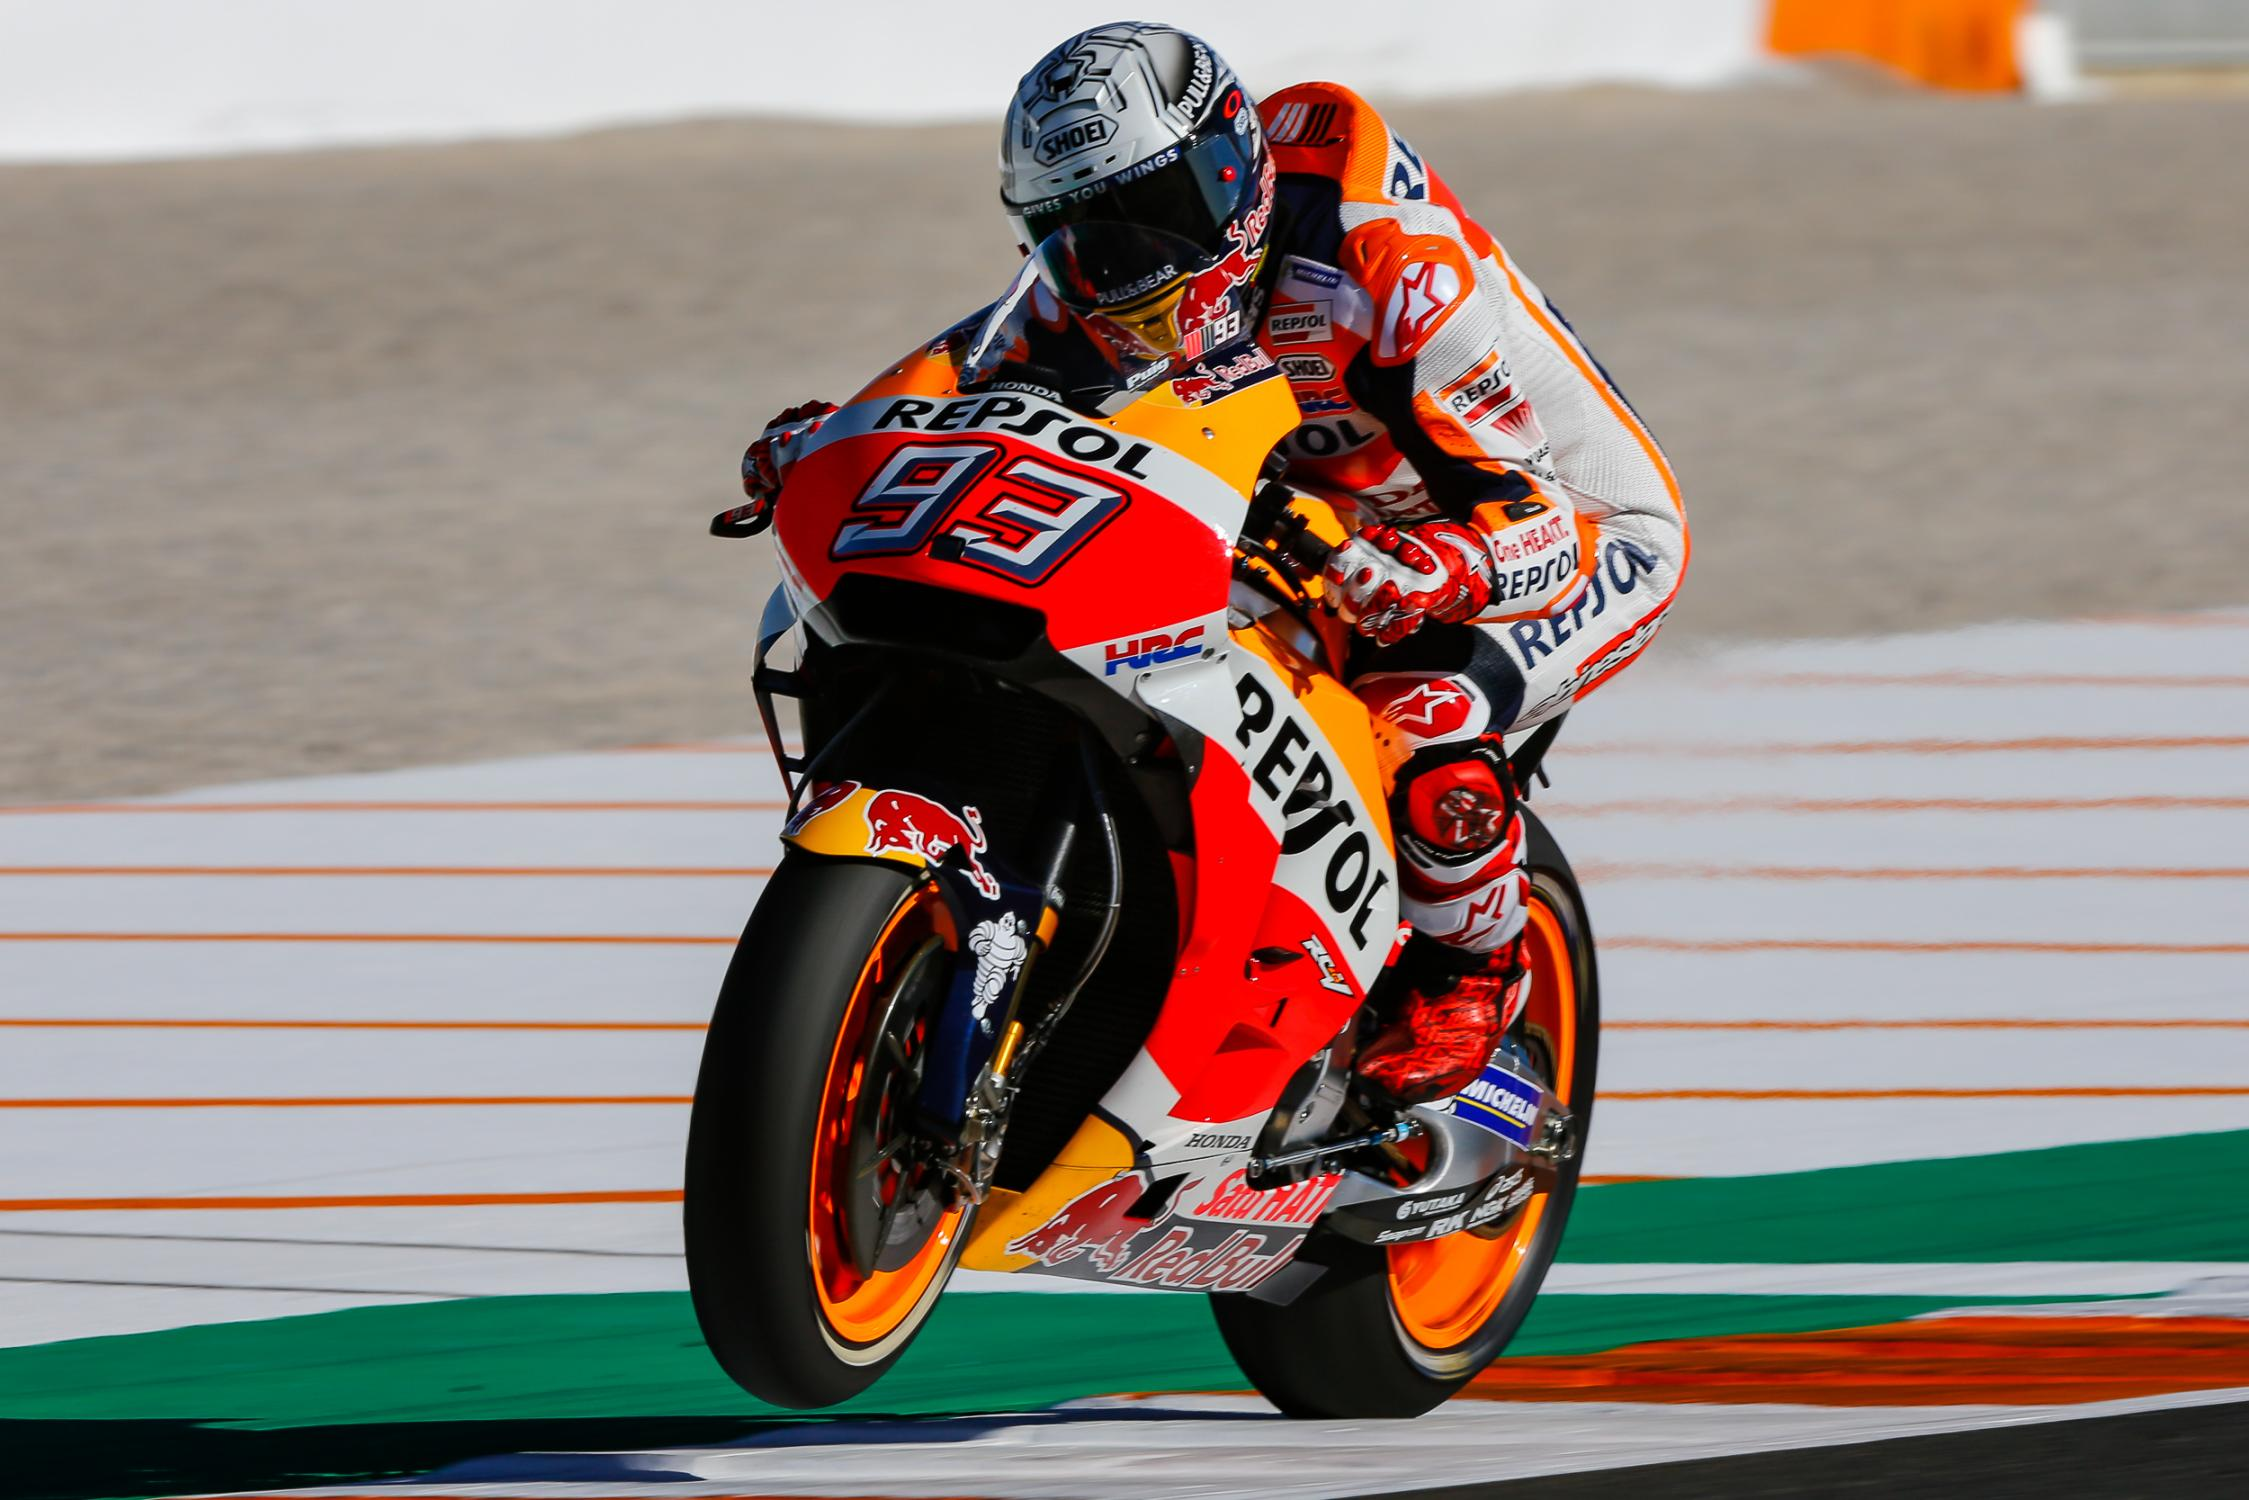 [GP] Valencia 93-marc-marquez-esp_gp_4661.gallery_full_top_fullscreen